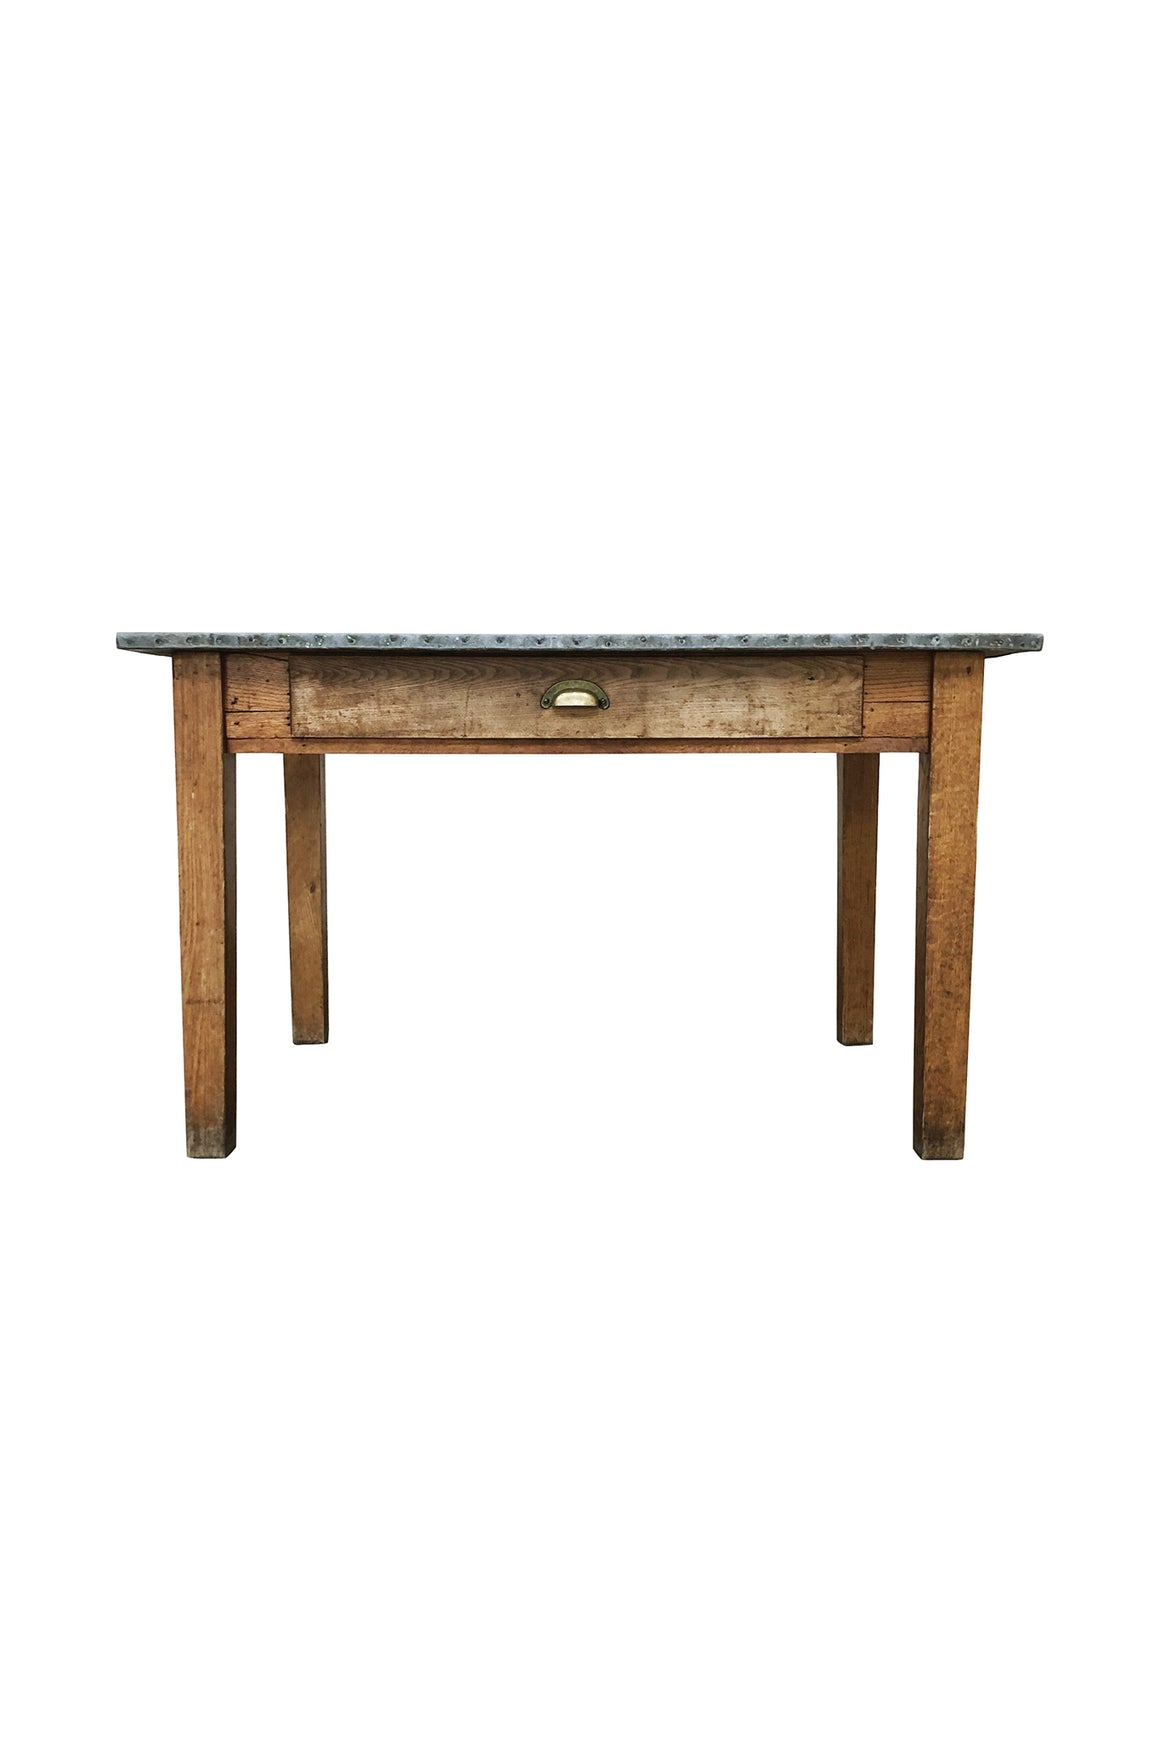 20th Century Industrial Table With Zinc Top